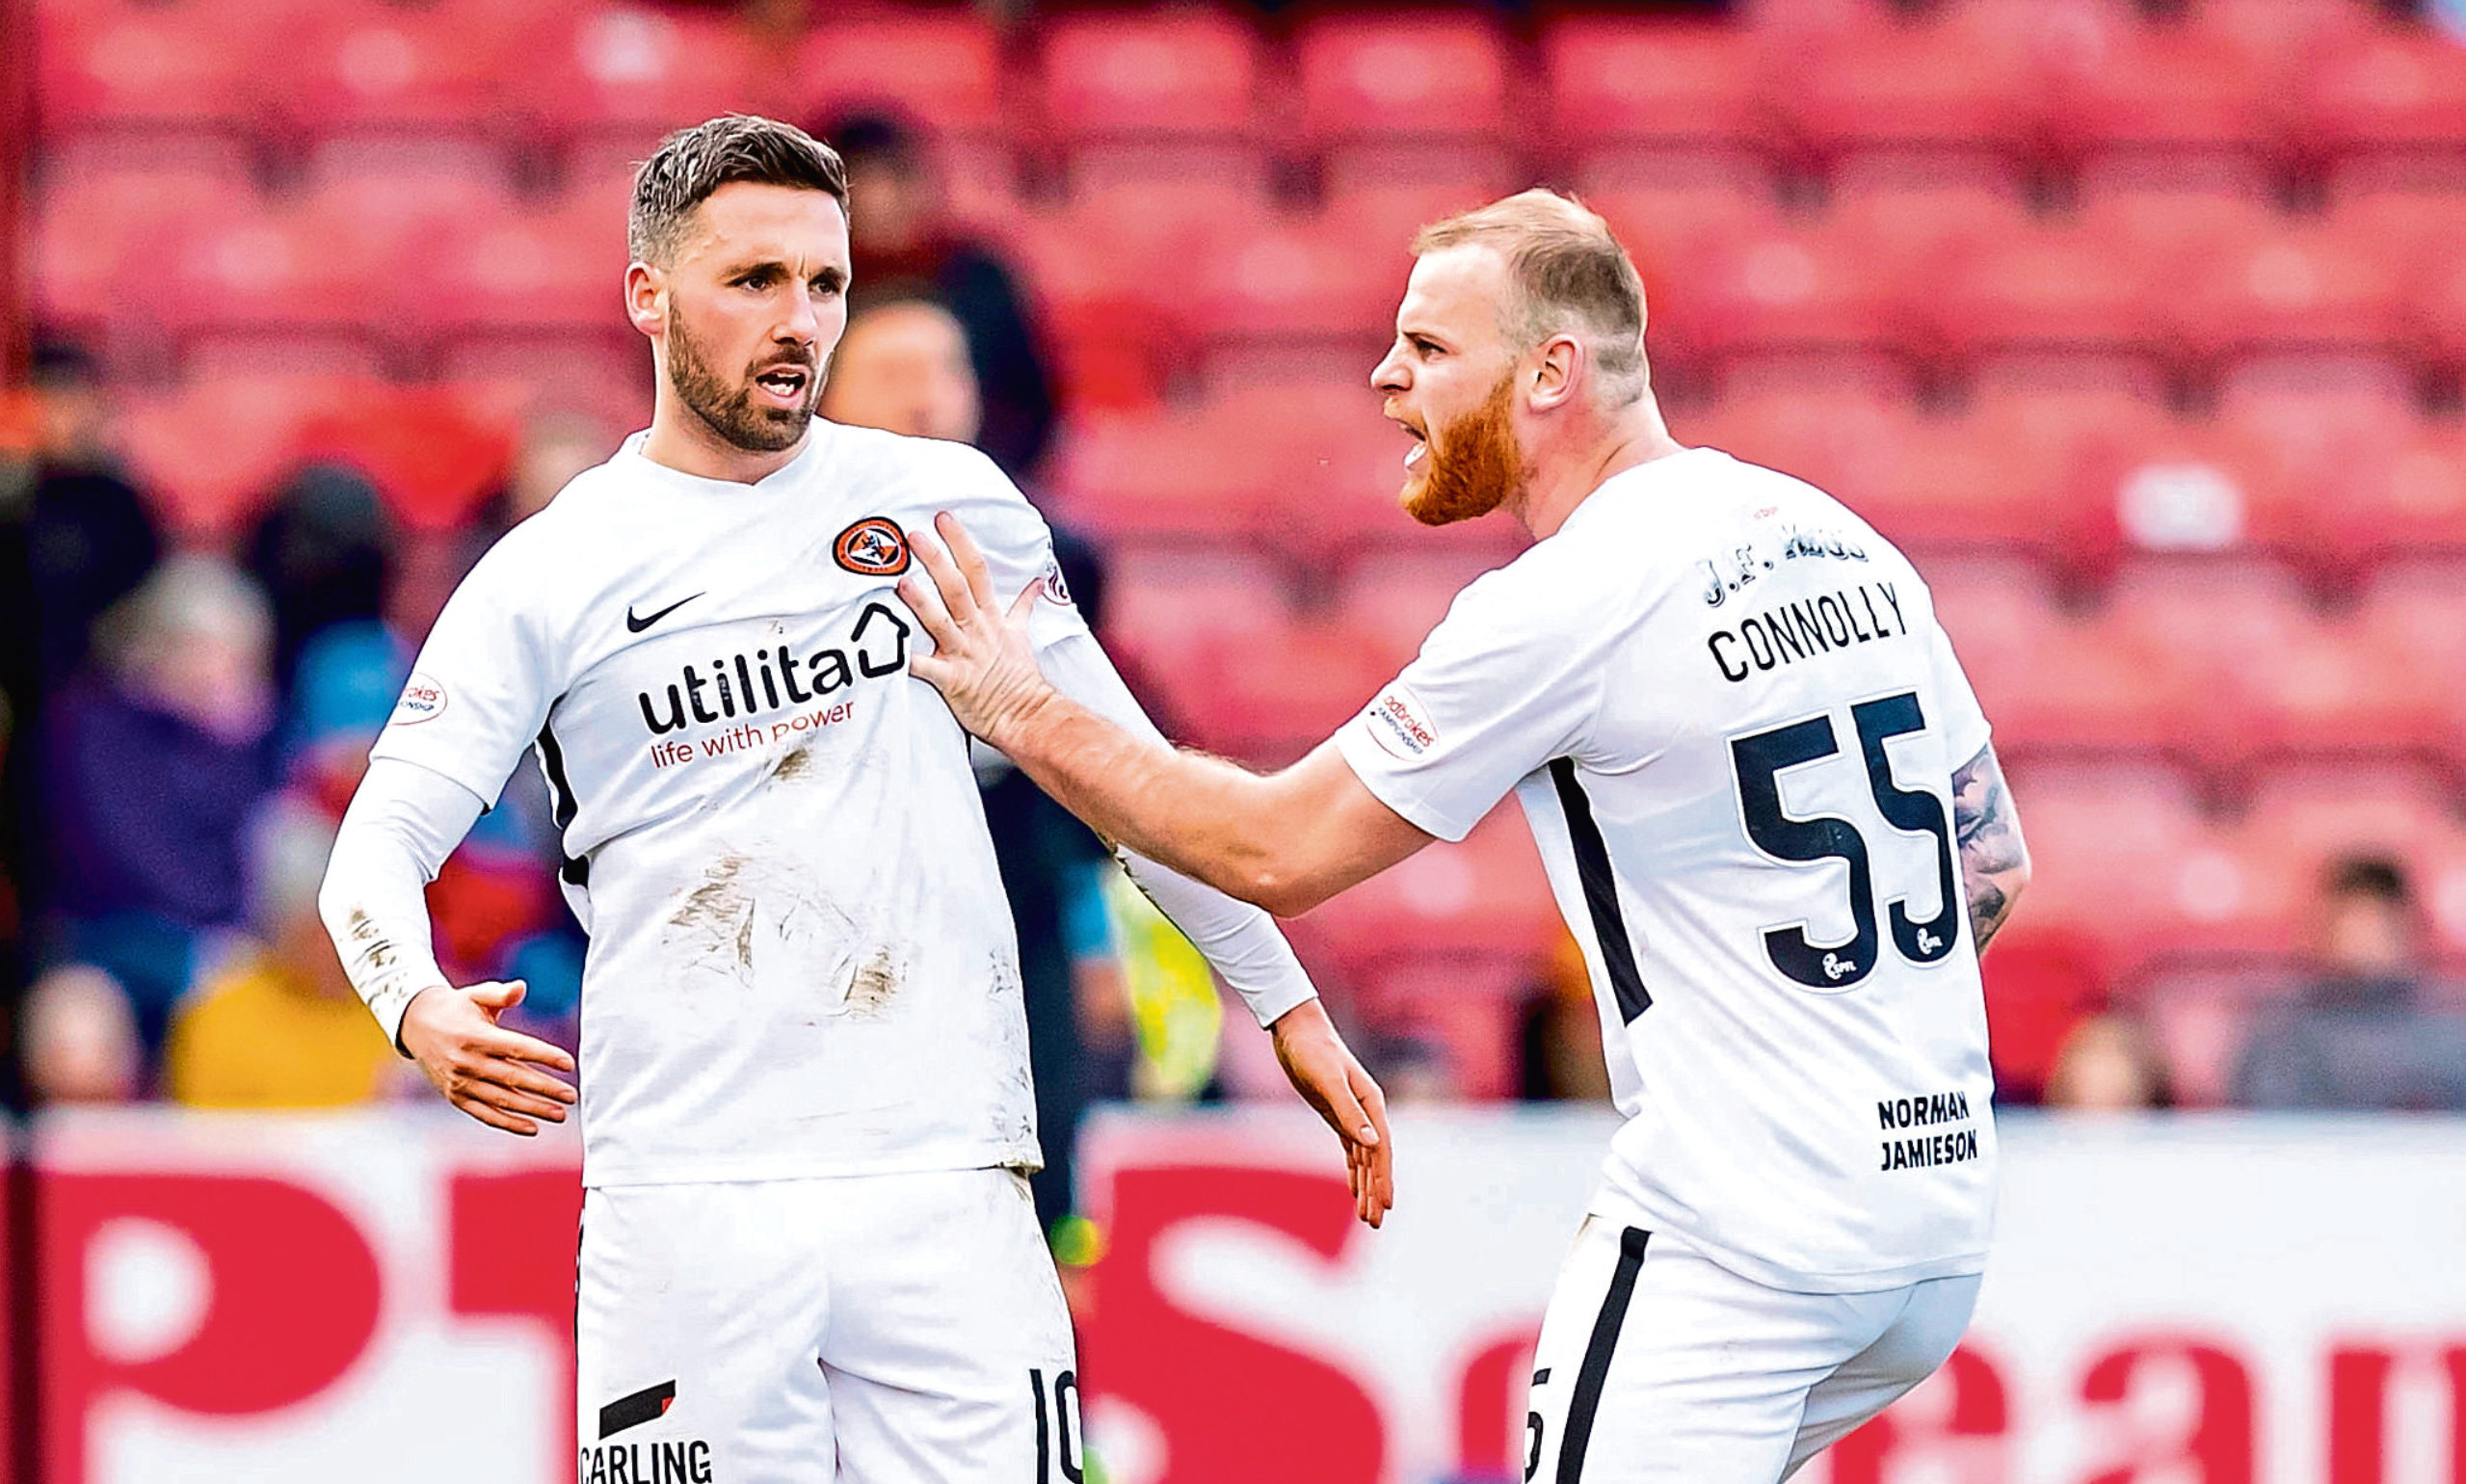 Dundee United's Nicky Clark celebrates his goal at Partick Thistle with Mark Connolly